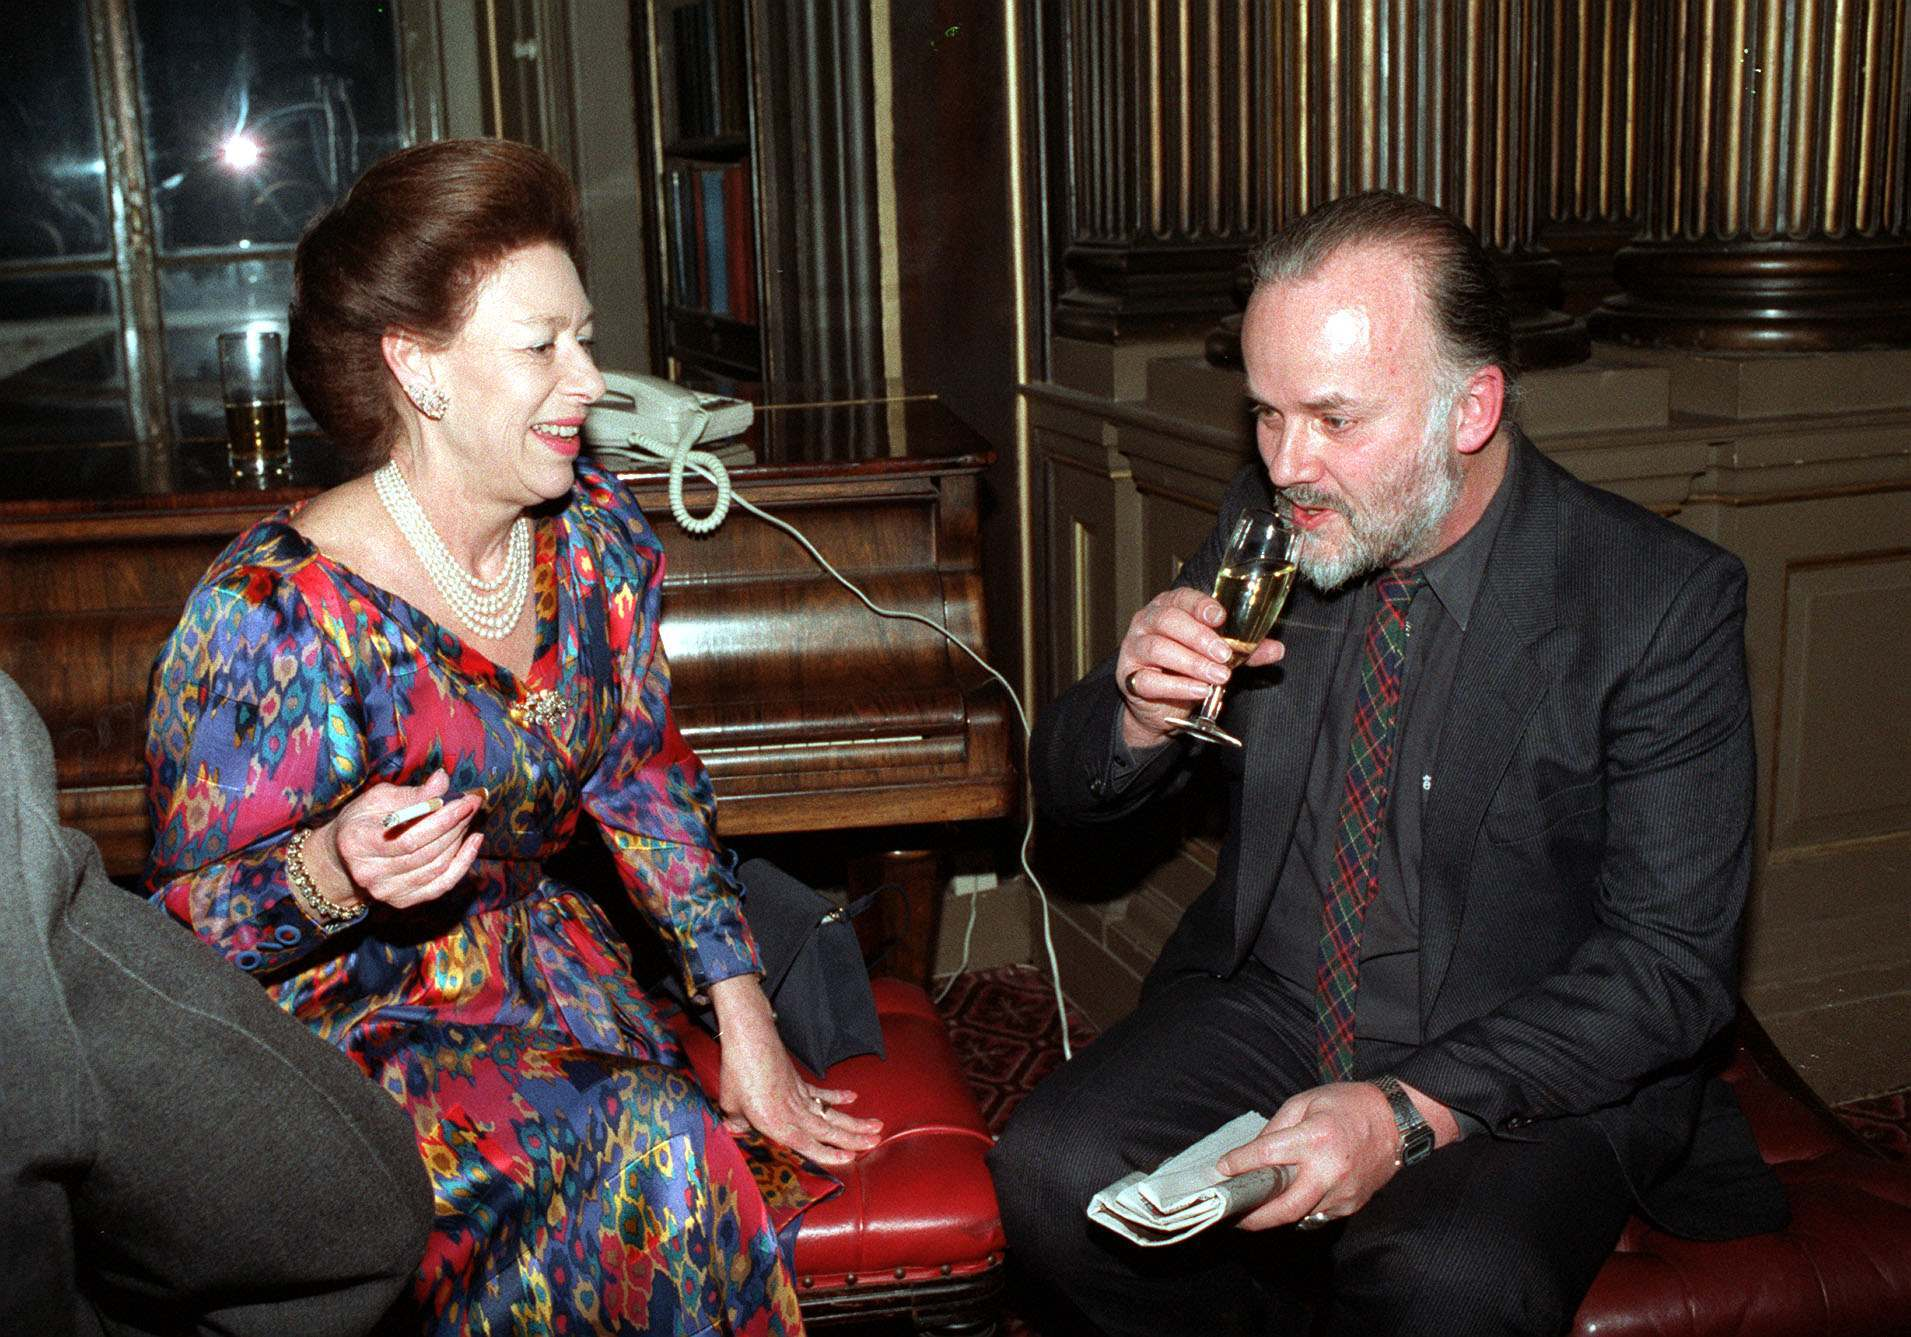 Princess Margaret chatting with John Peel at the Reform Club in 1992. They were there for the 50 year anniversary of Desert Island Discs.